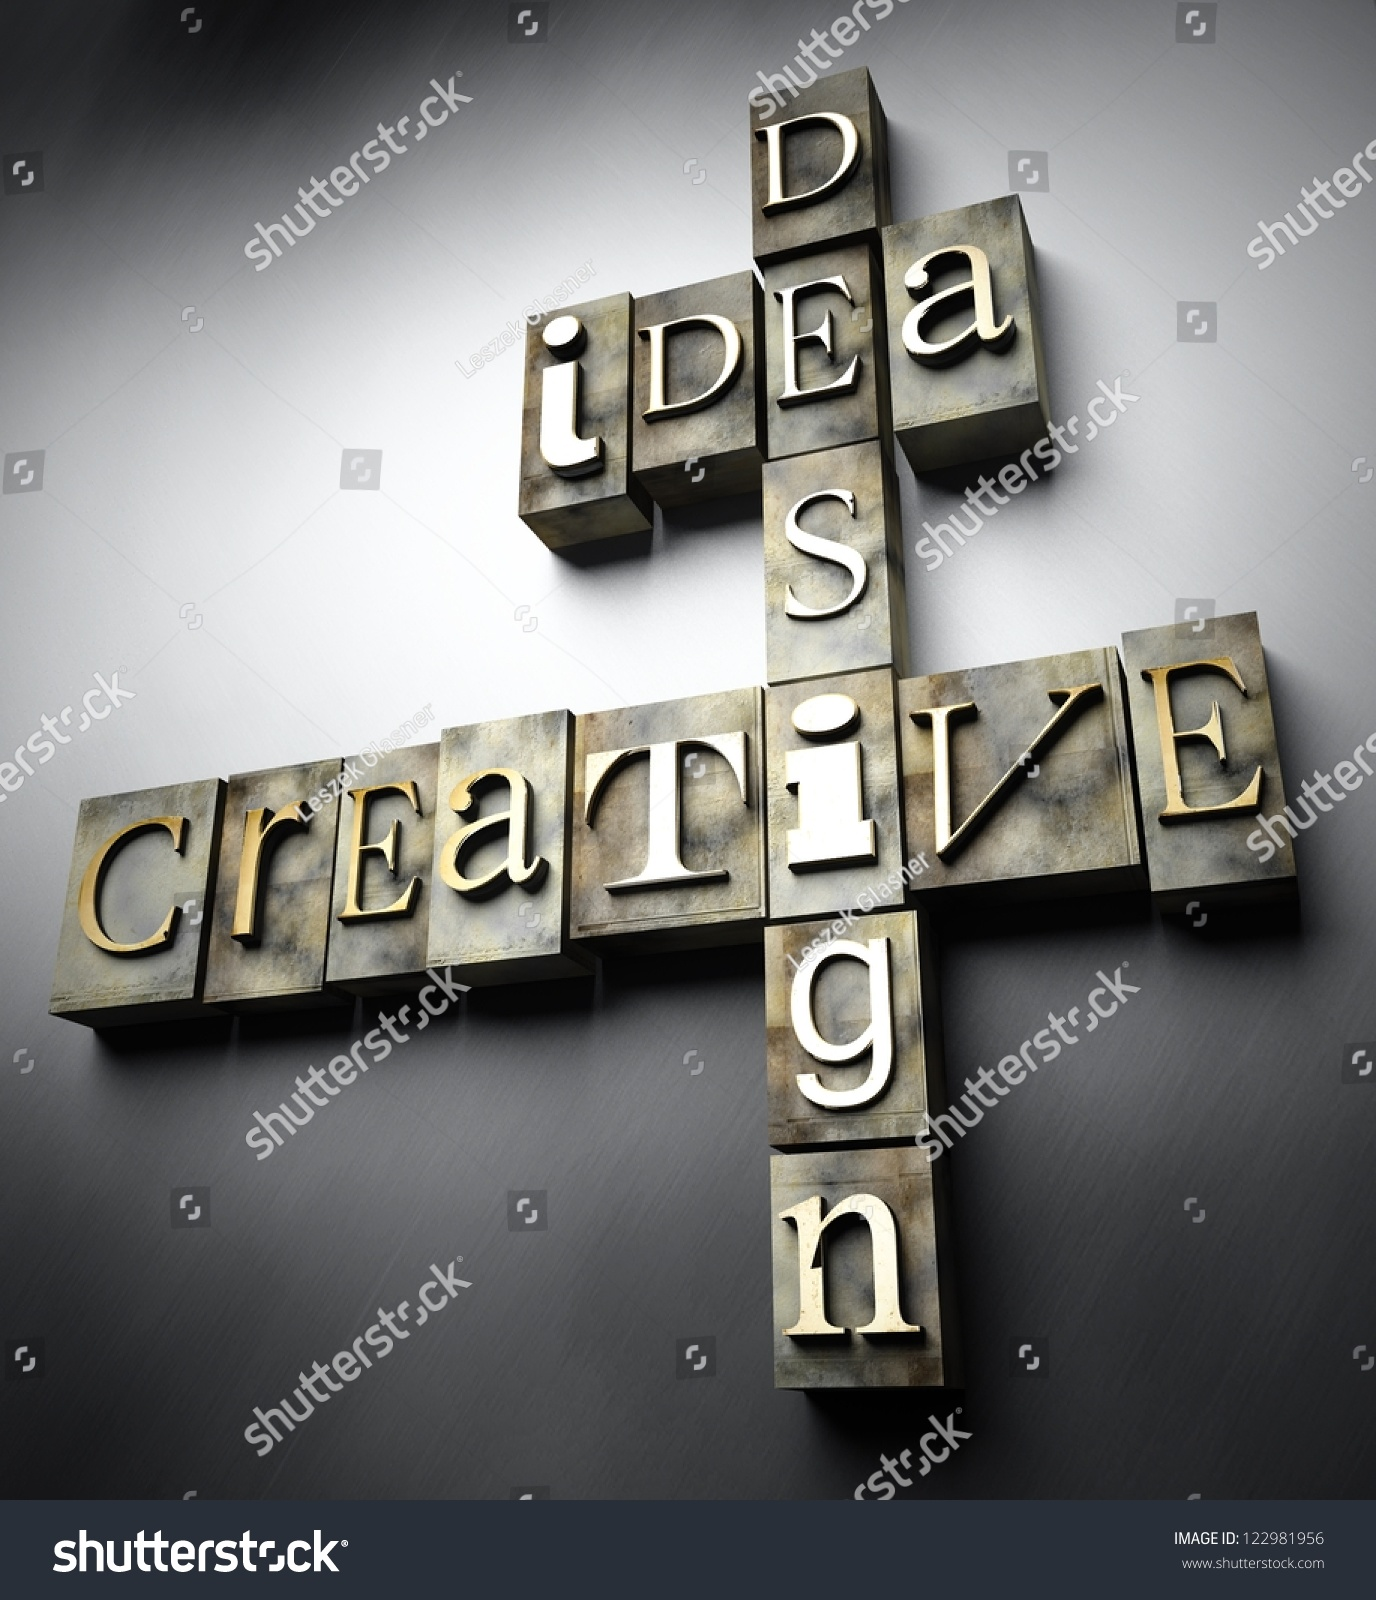 save to a lightbox idea design - Idea Design